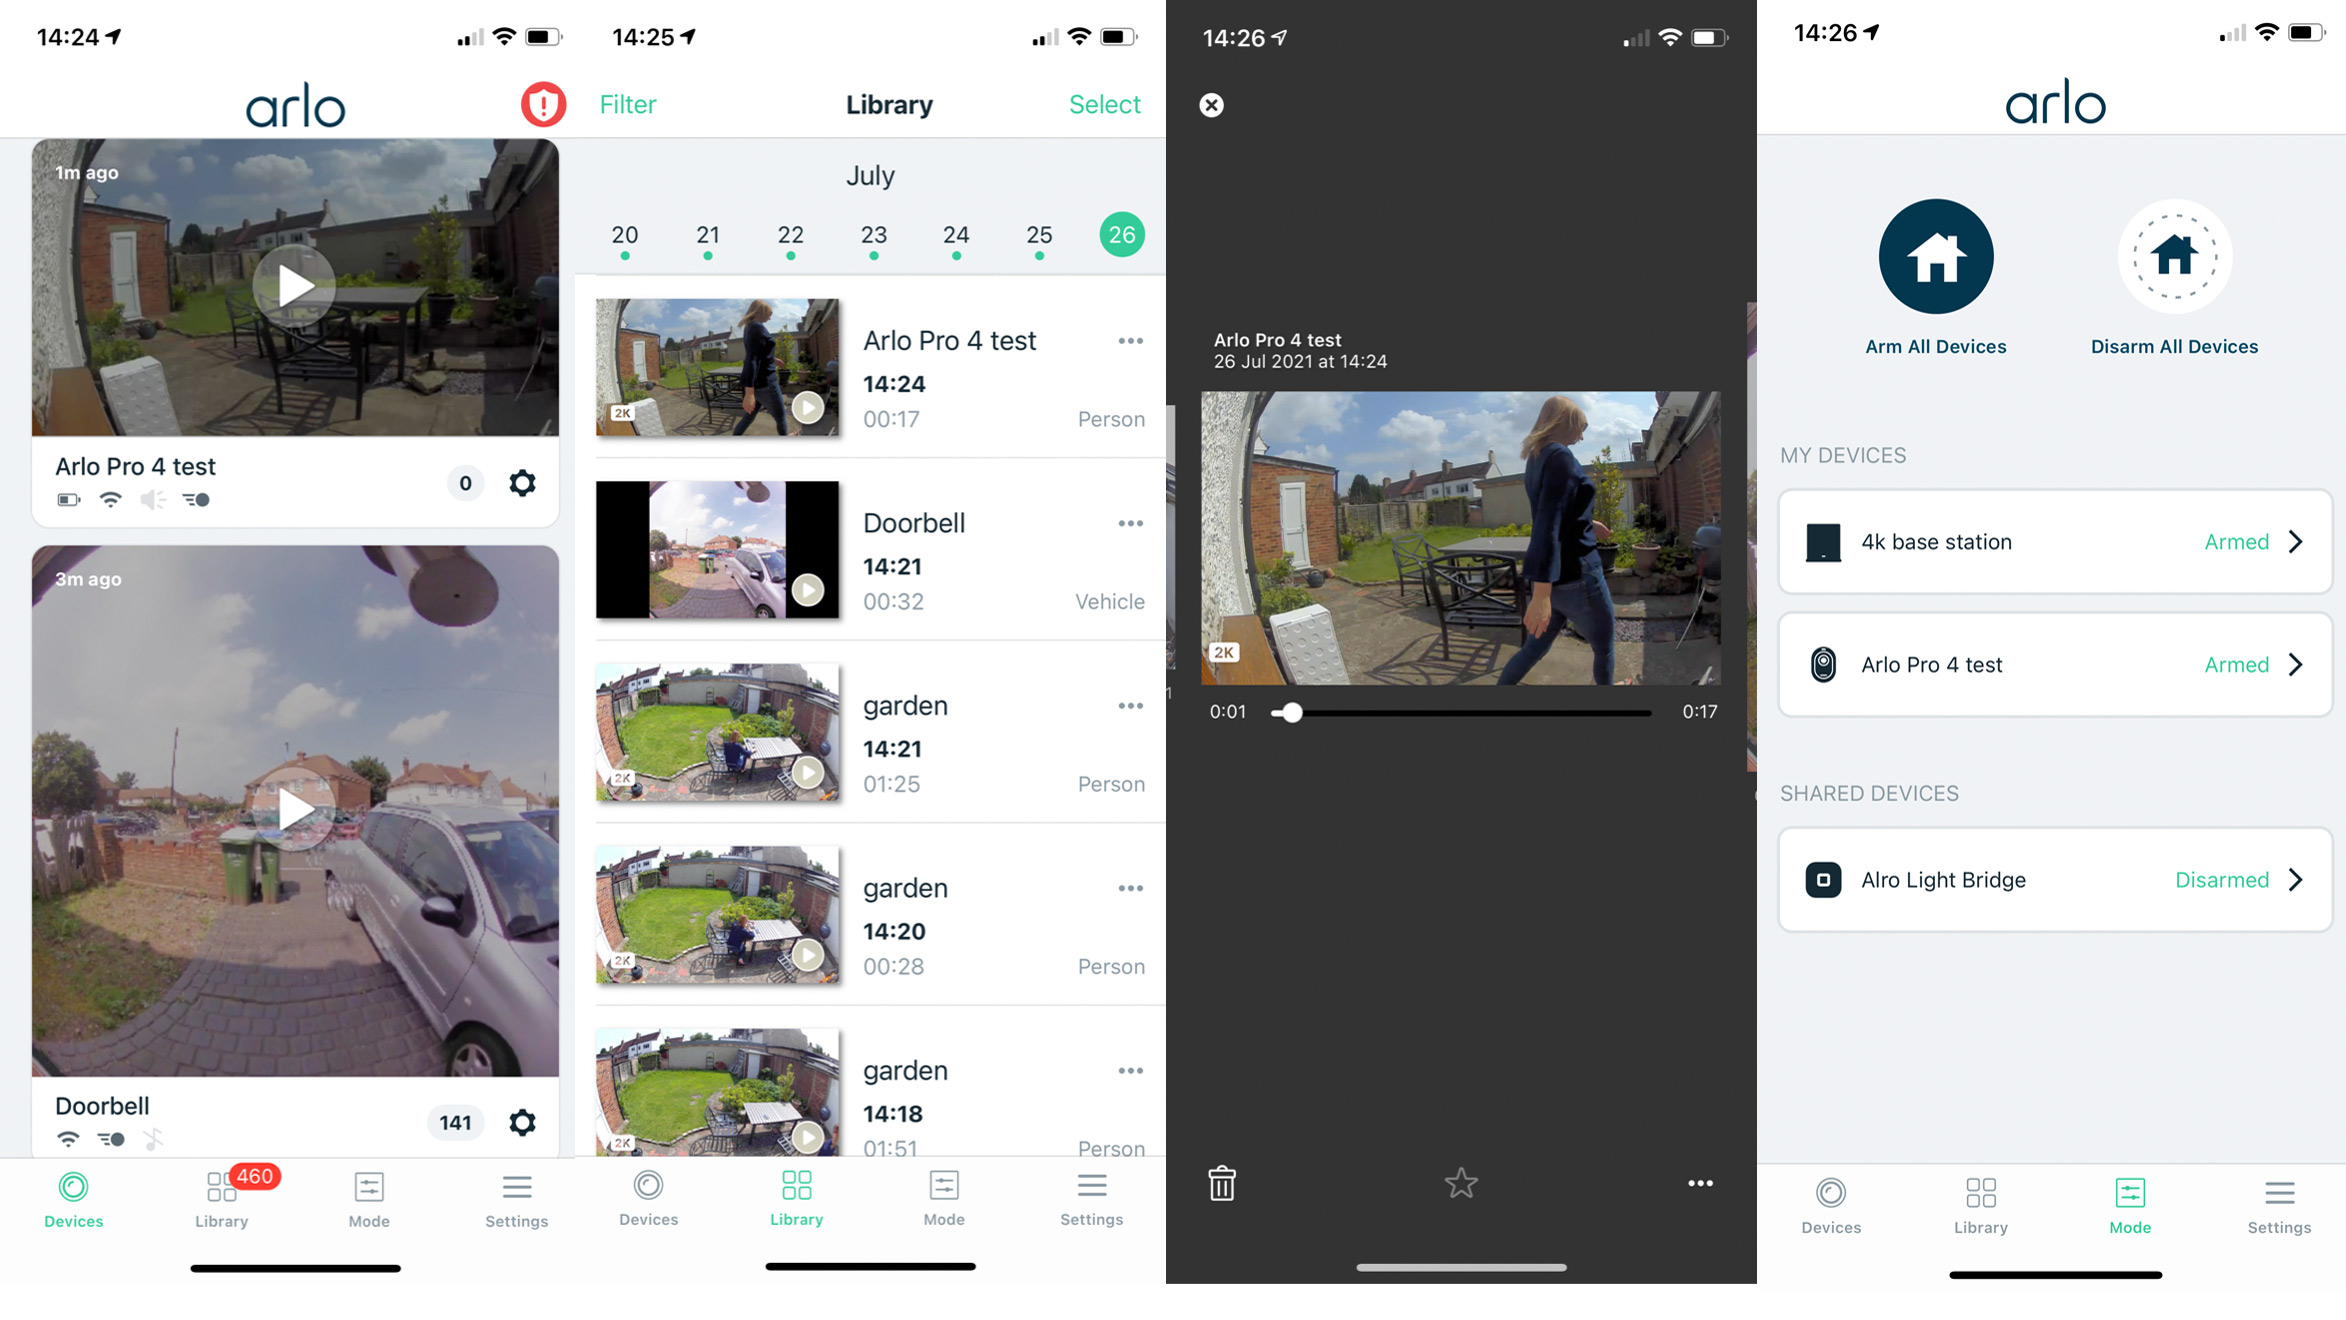 The app used to control the Arlo Pro 4